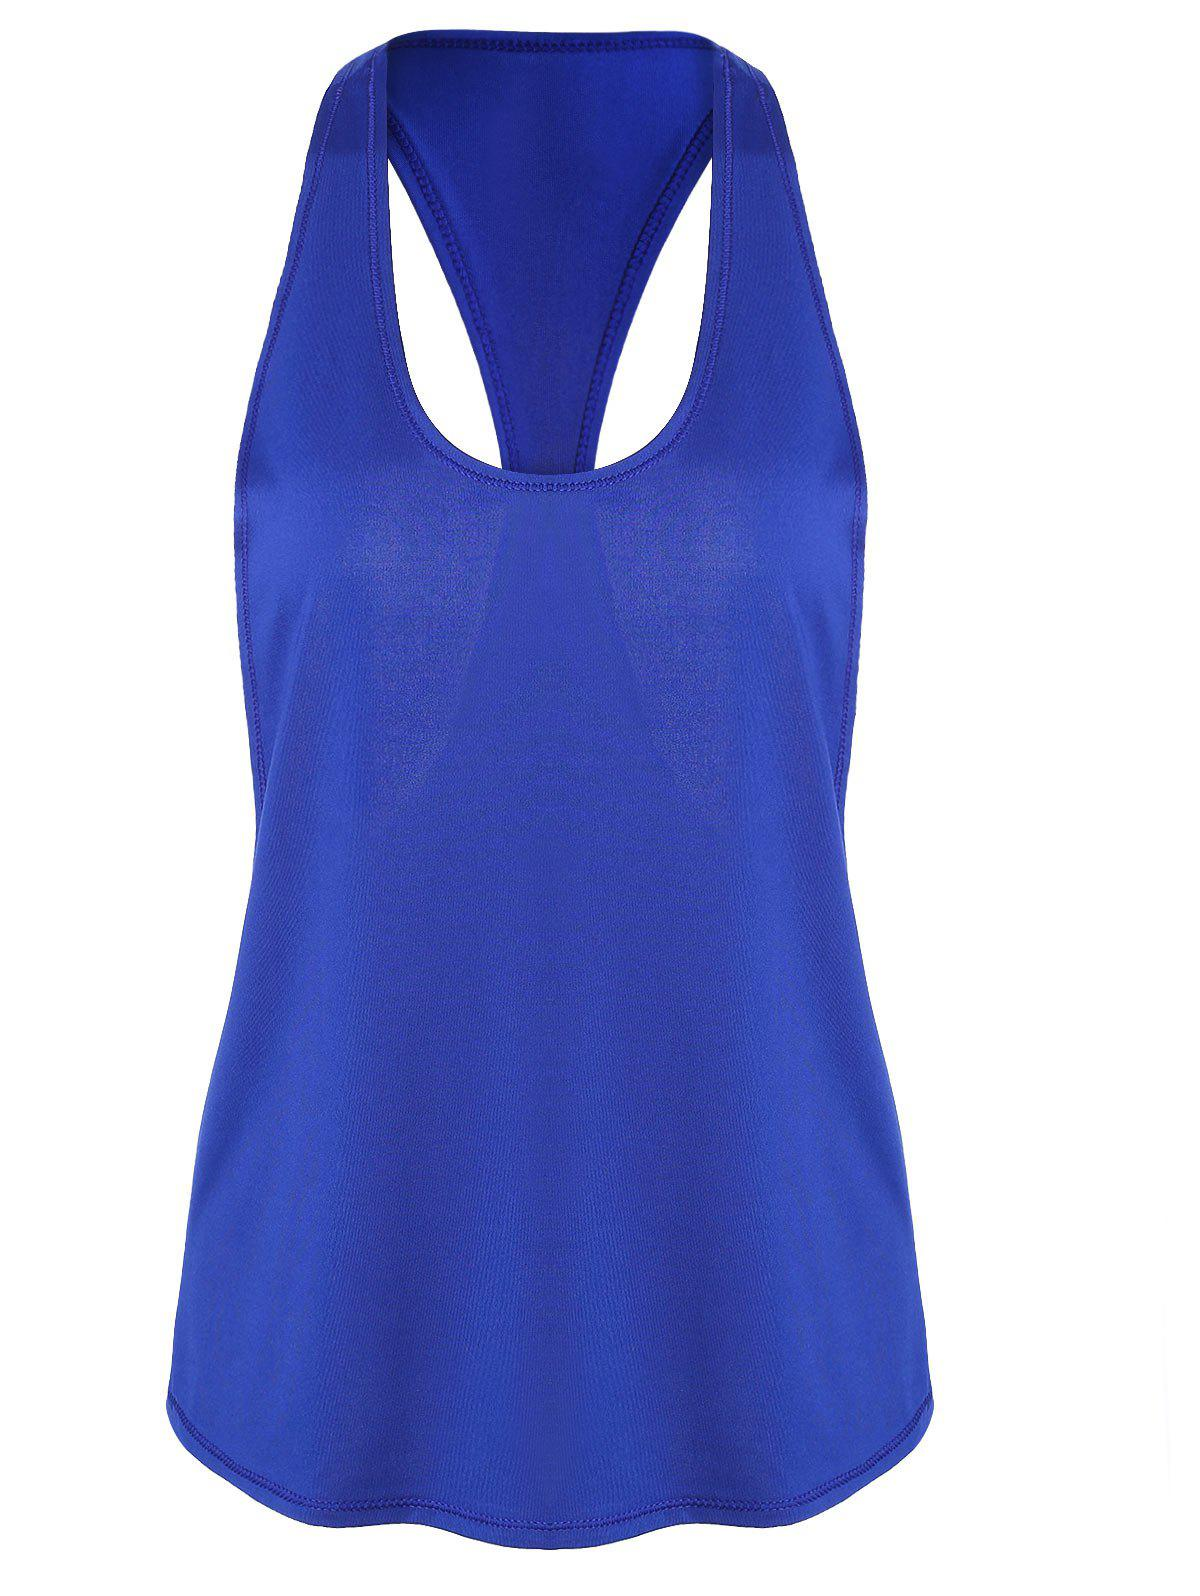 Racerback Workout Athletic Running Tank Top